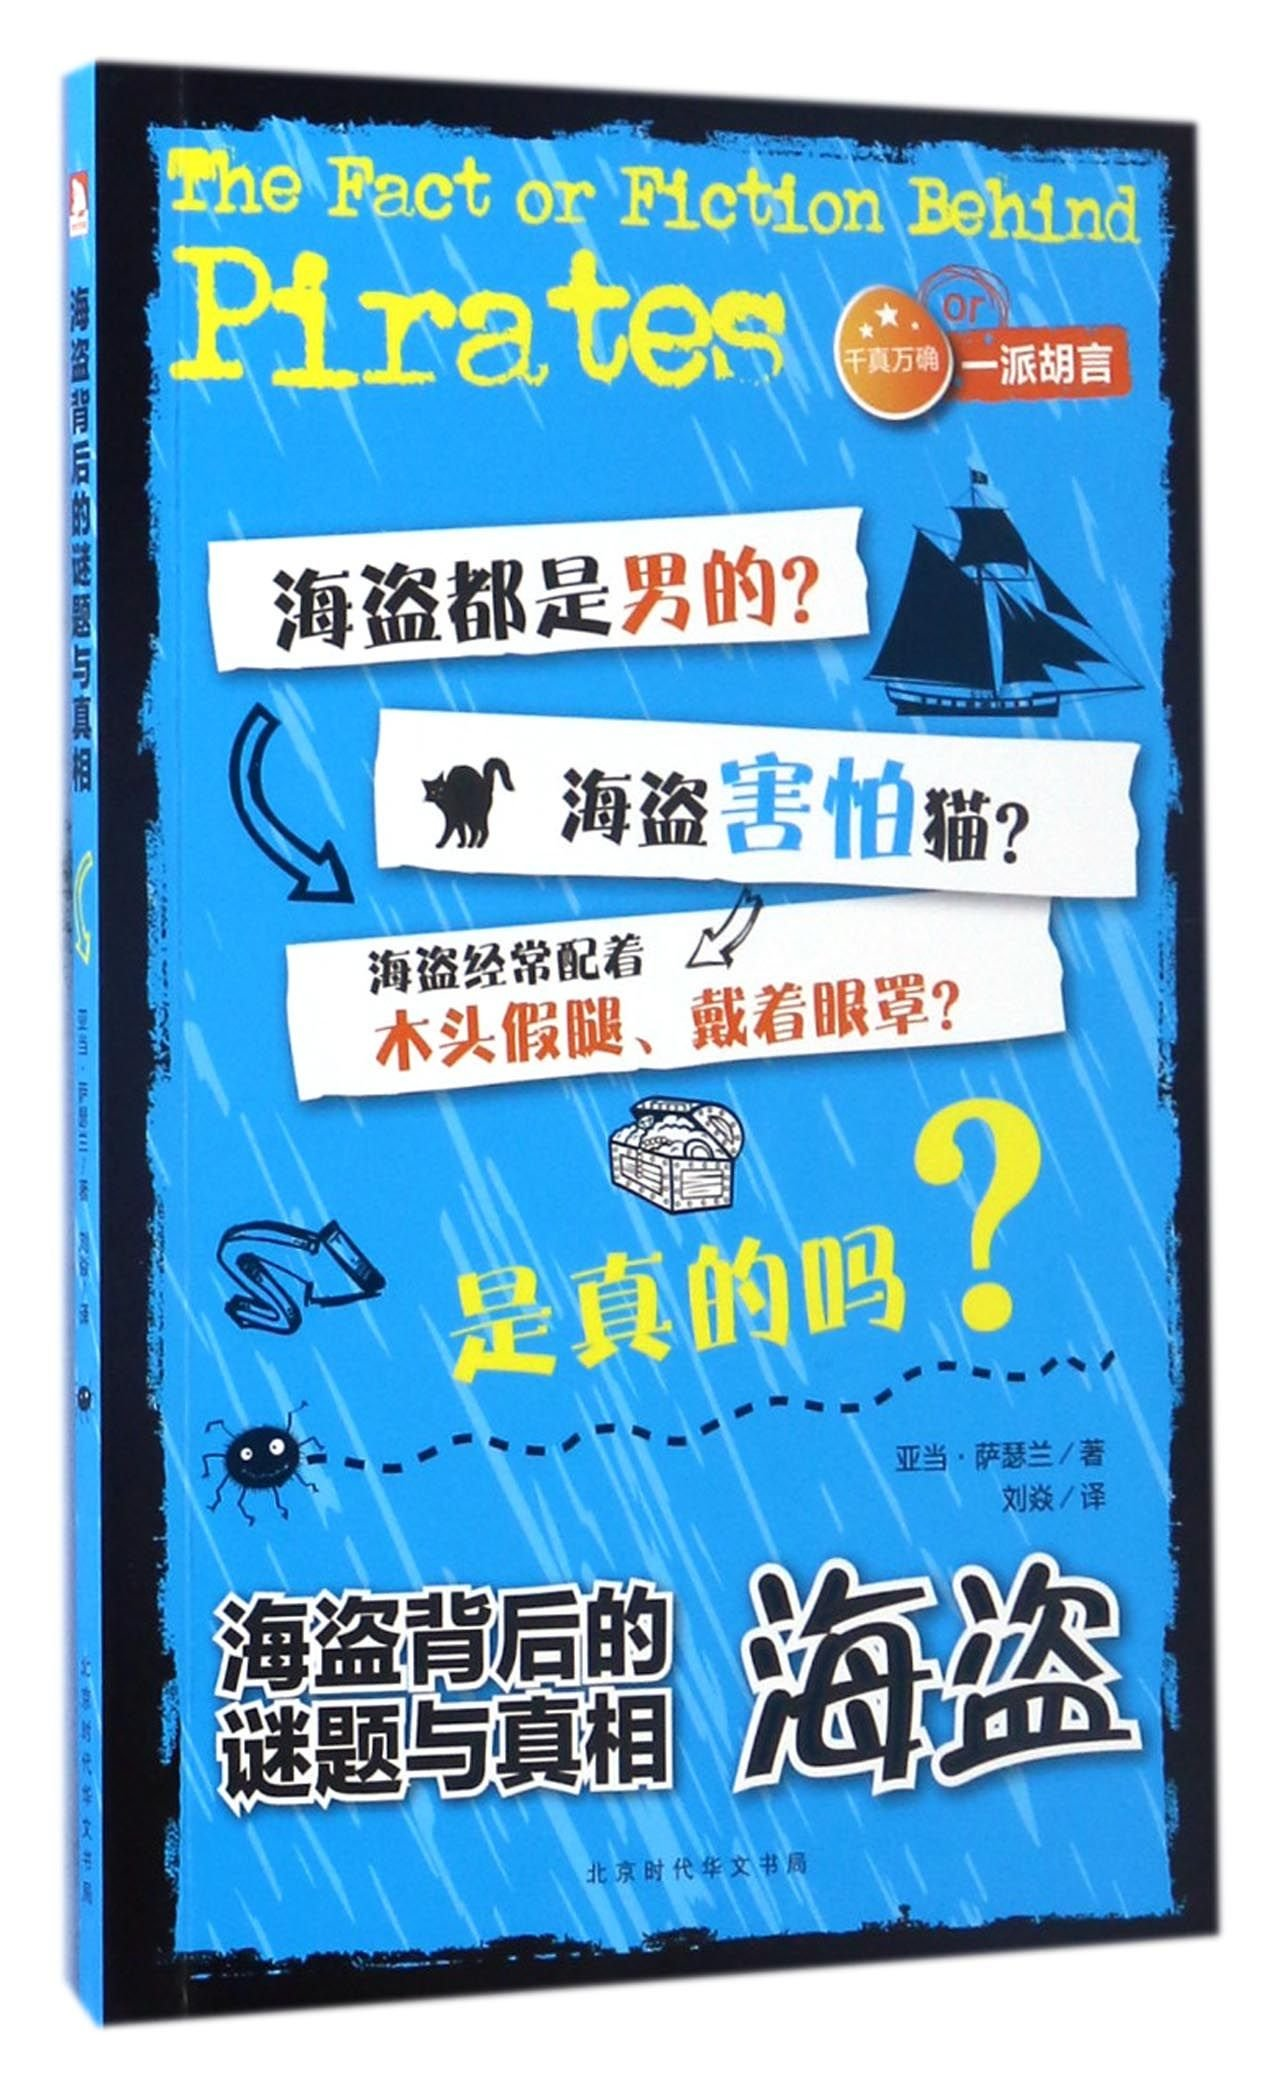 The Fact or Fiction Behind Pirates (Chinese Edition) ebook